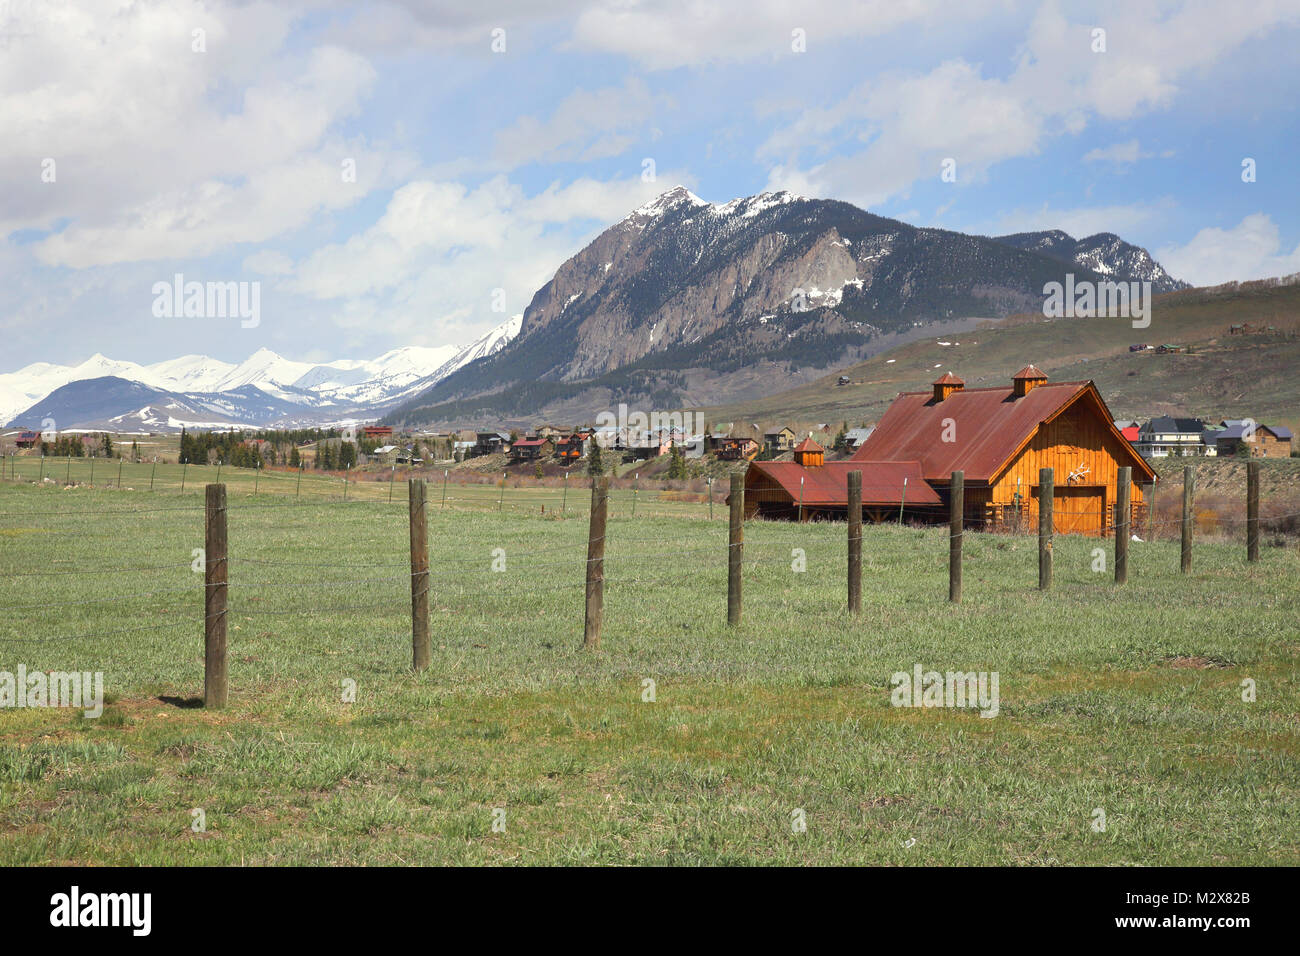 the ski resort of crested butte colorado - Stock Image